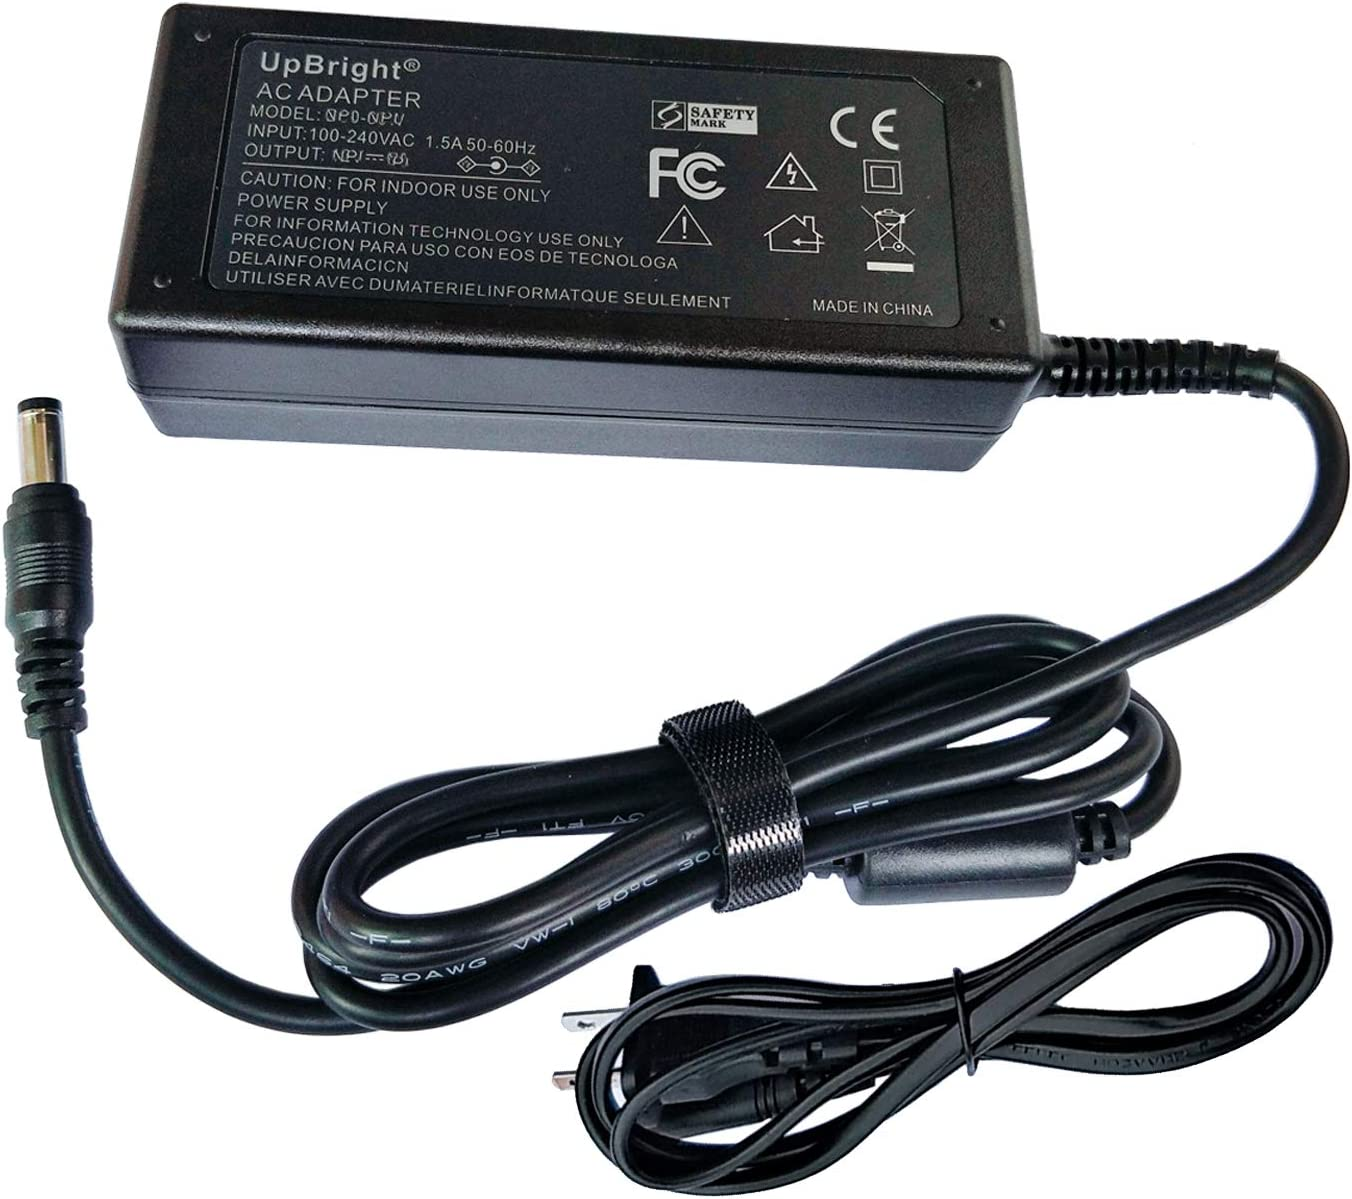 "AC Adapter for Acer 20"" LED Monitor S201HL, S202HL, LCD S200HQL."